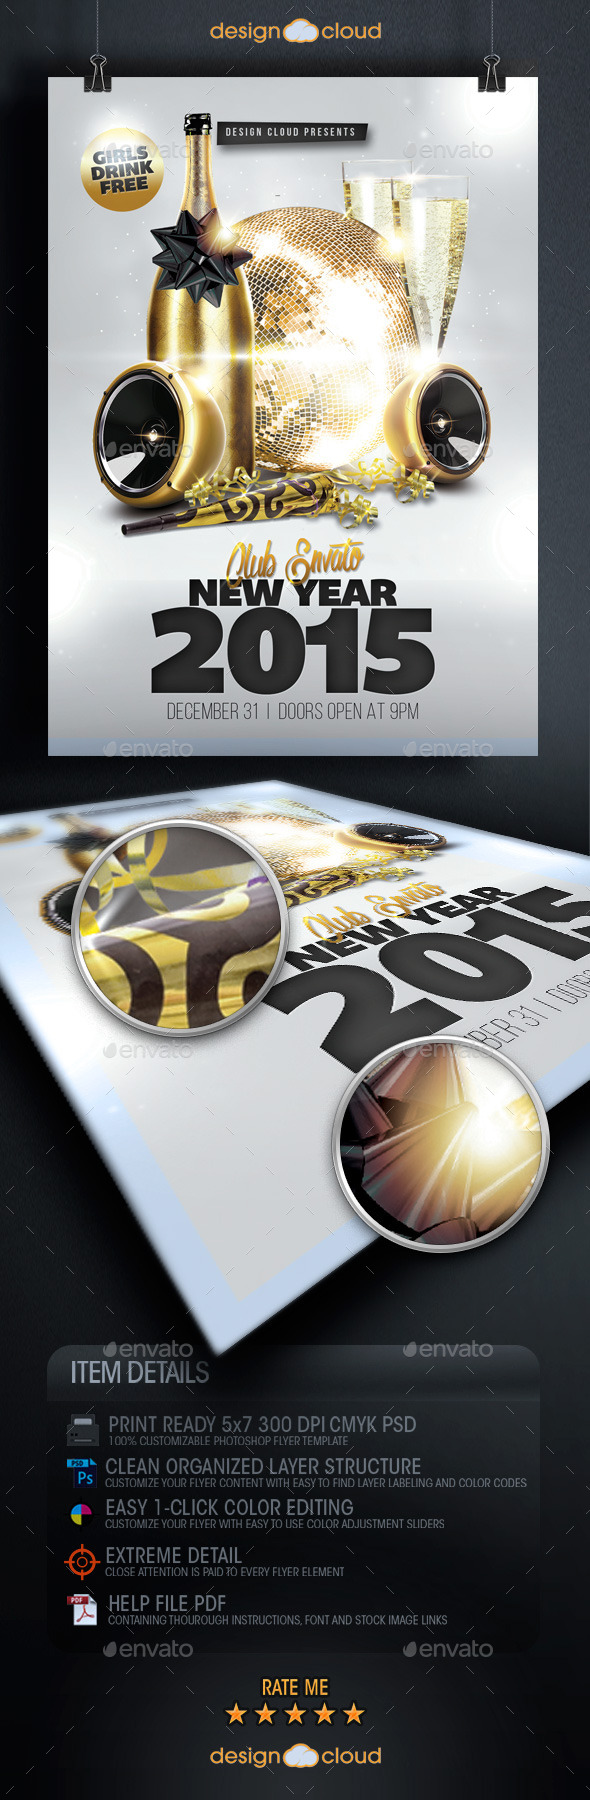 New Year's Event Flyer Template Vol. 1 - Holidays Events